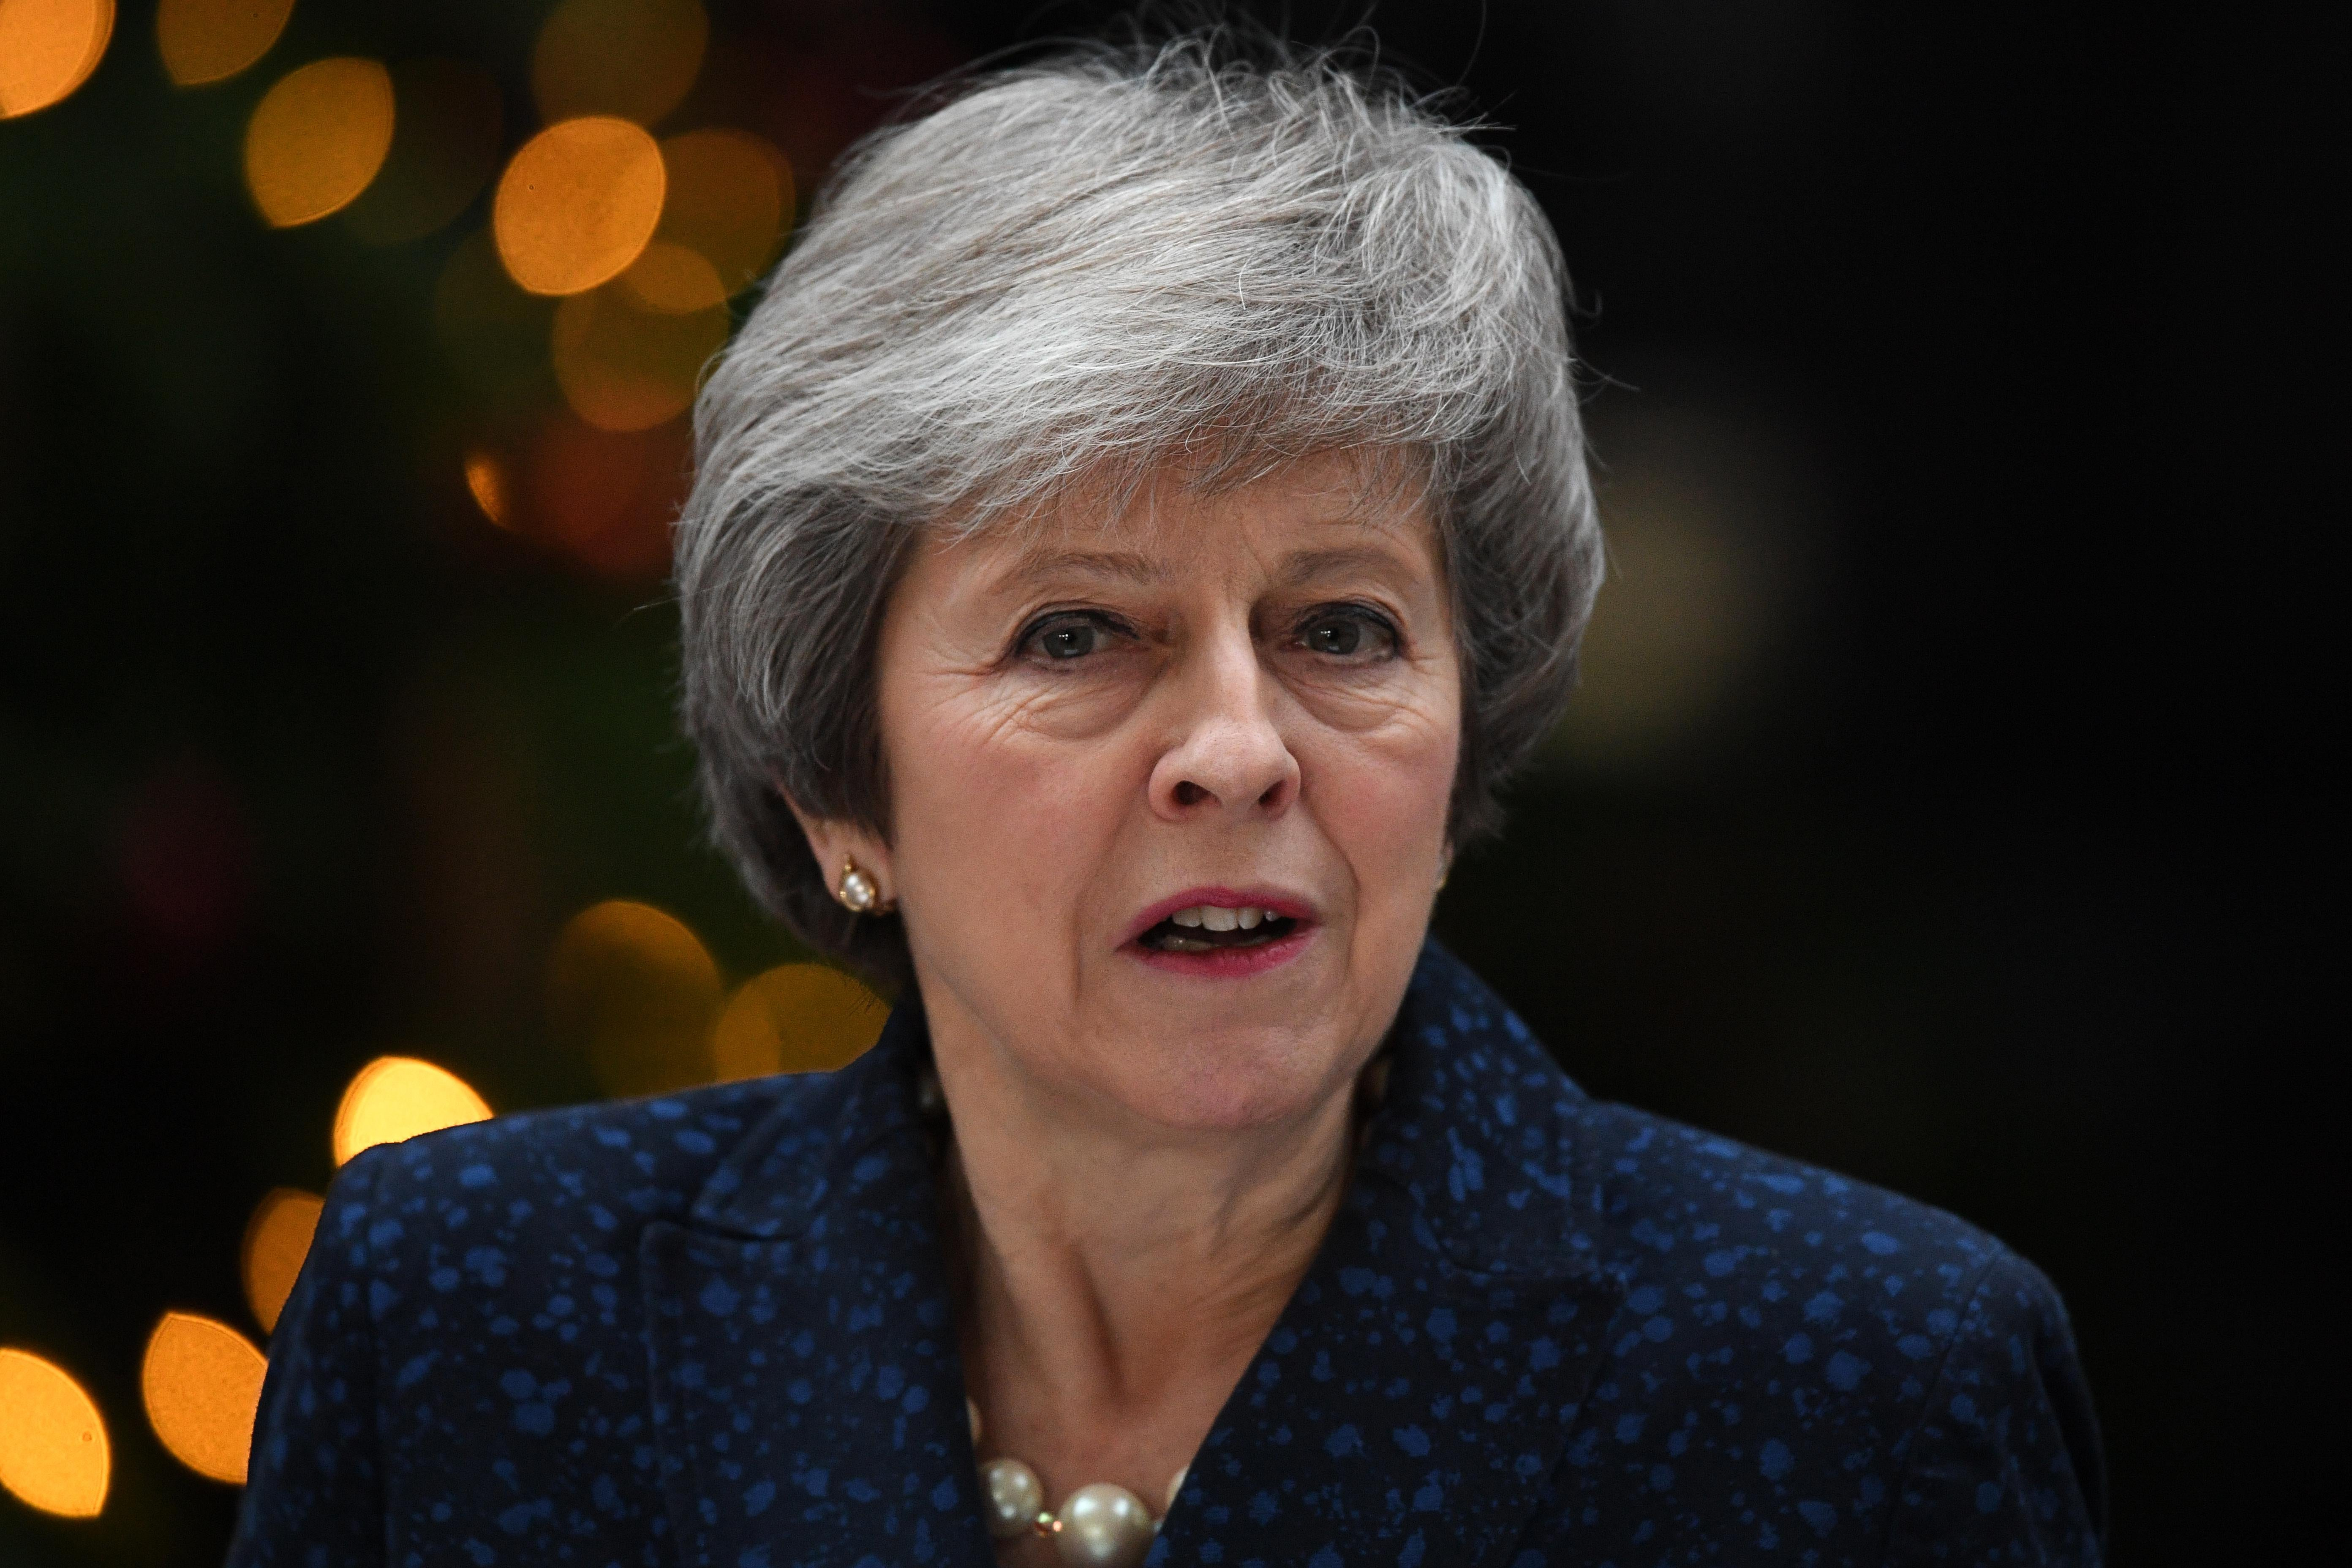 Theresa May speaks and looks toward the camera. Behind her, there appear to be Christmas lights.